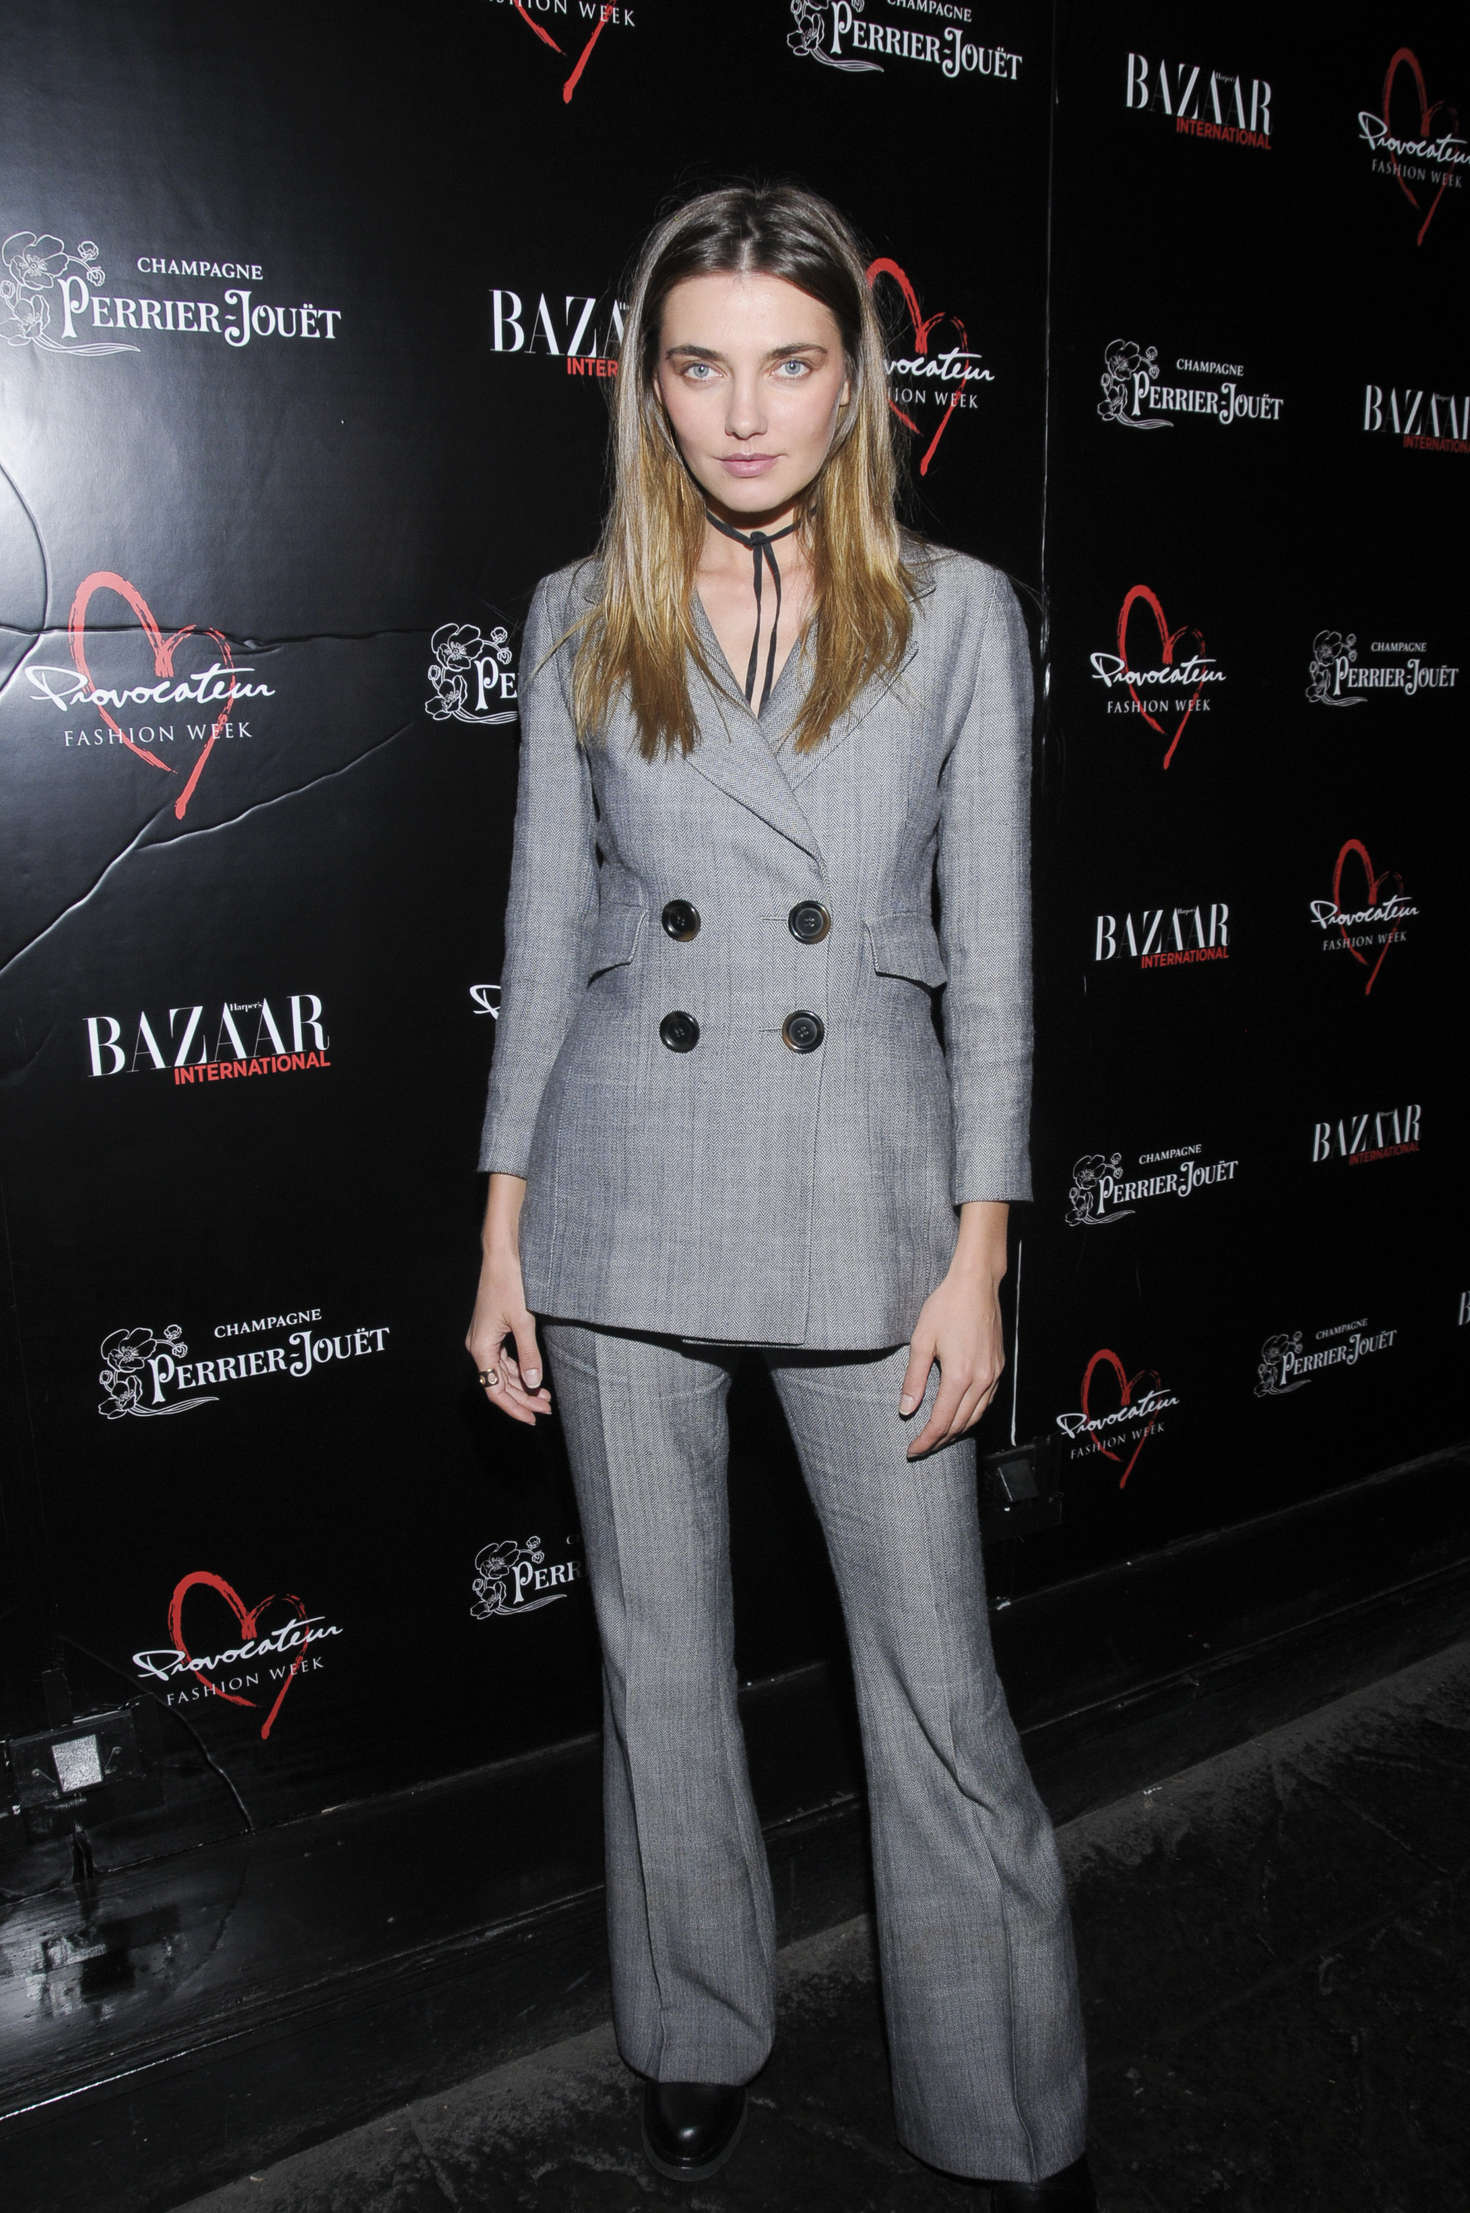 Alina Baikova Harpers Bazaar International Celebrates Fashion Cinema at Provocateur in New York